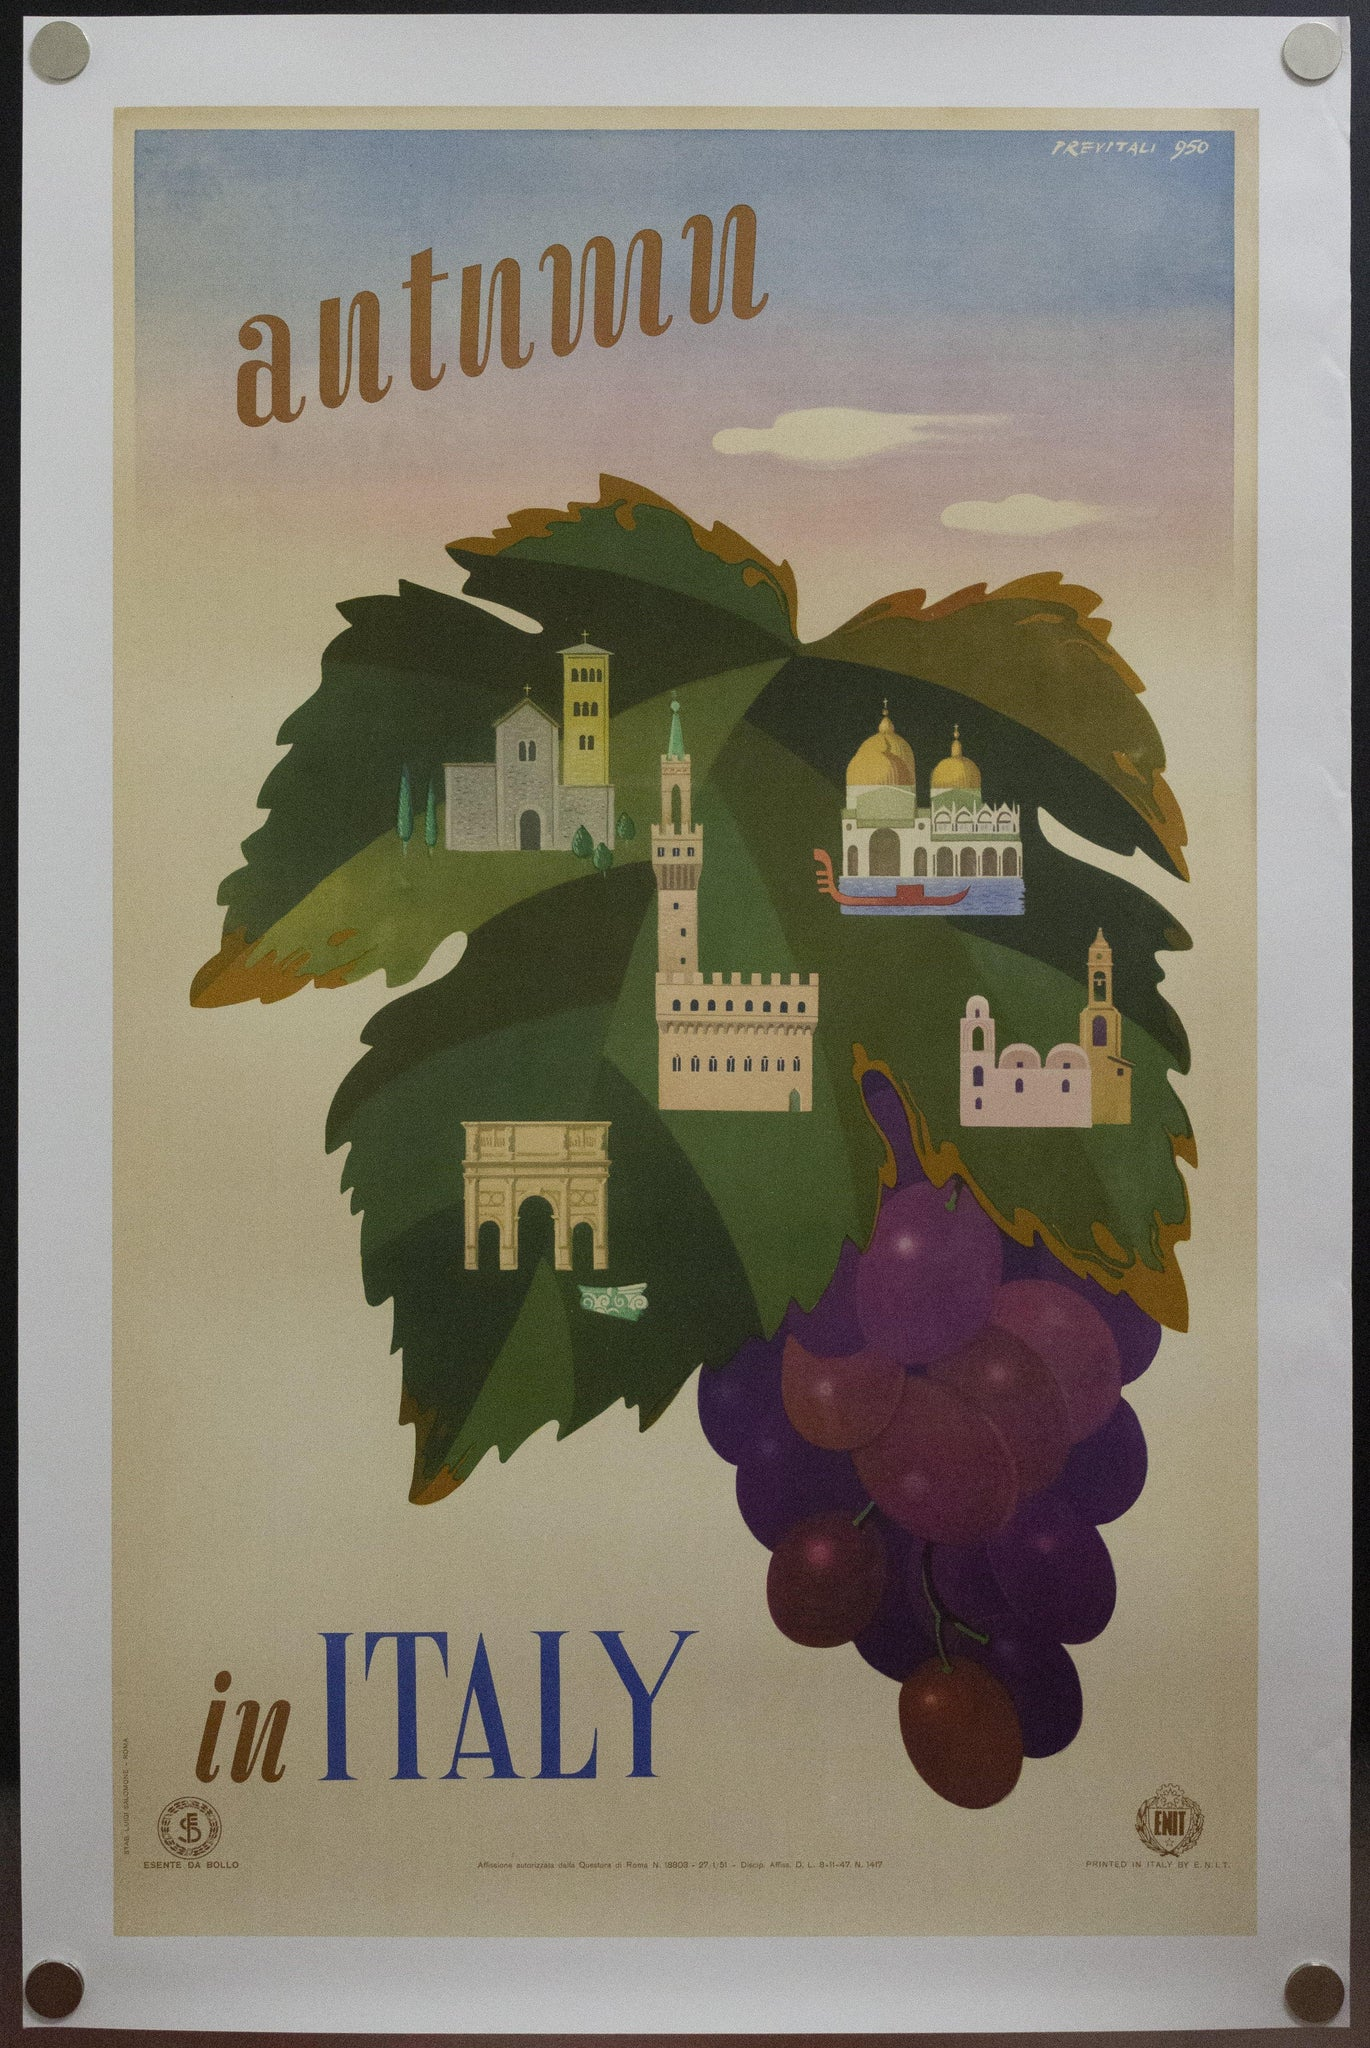 1951 Autumn in Italy by Previtali ENIT Italian Travel Wine Grapes - Golden Age Posters